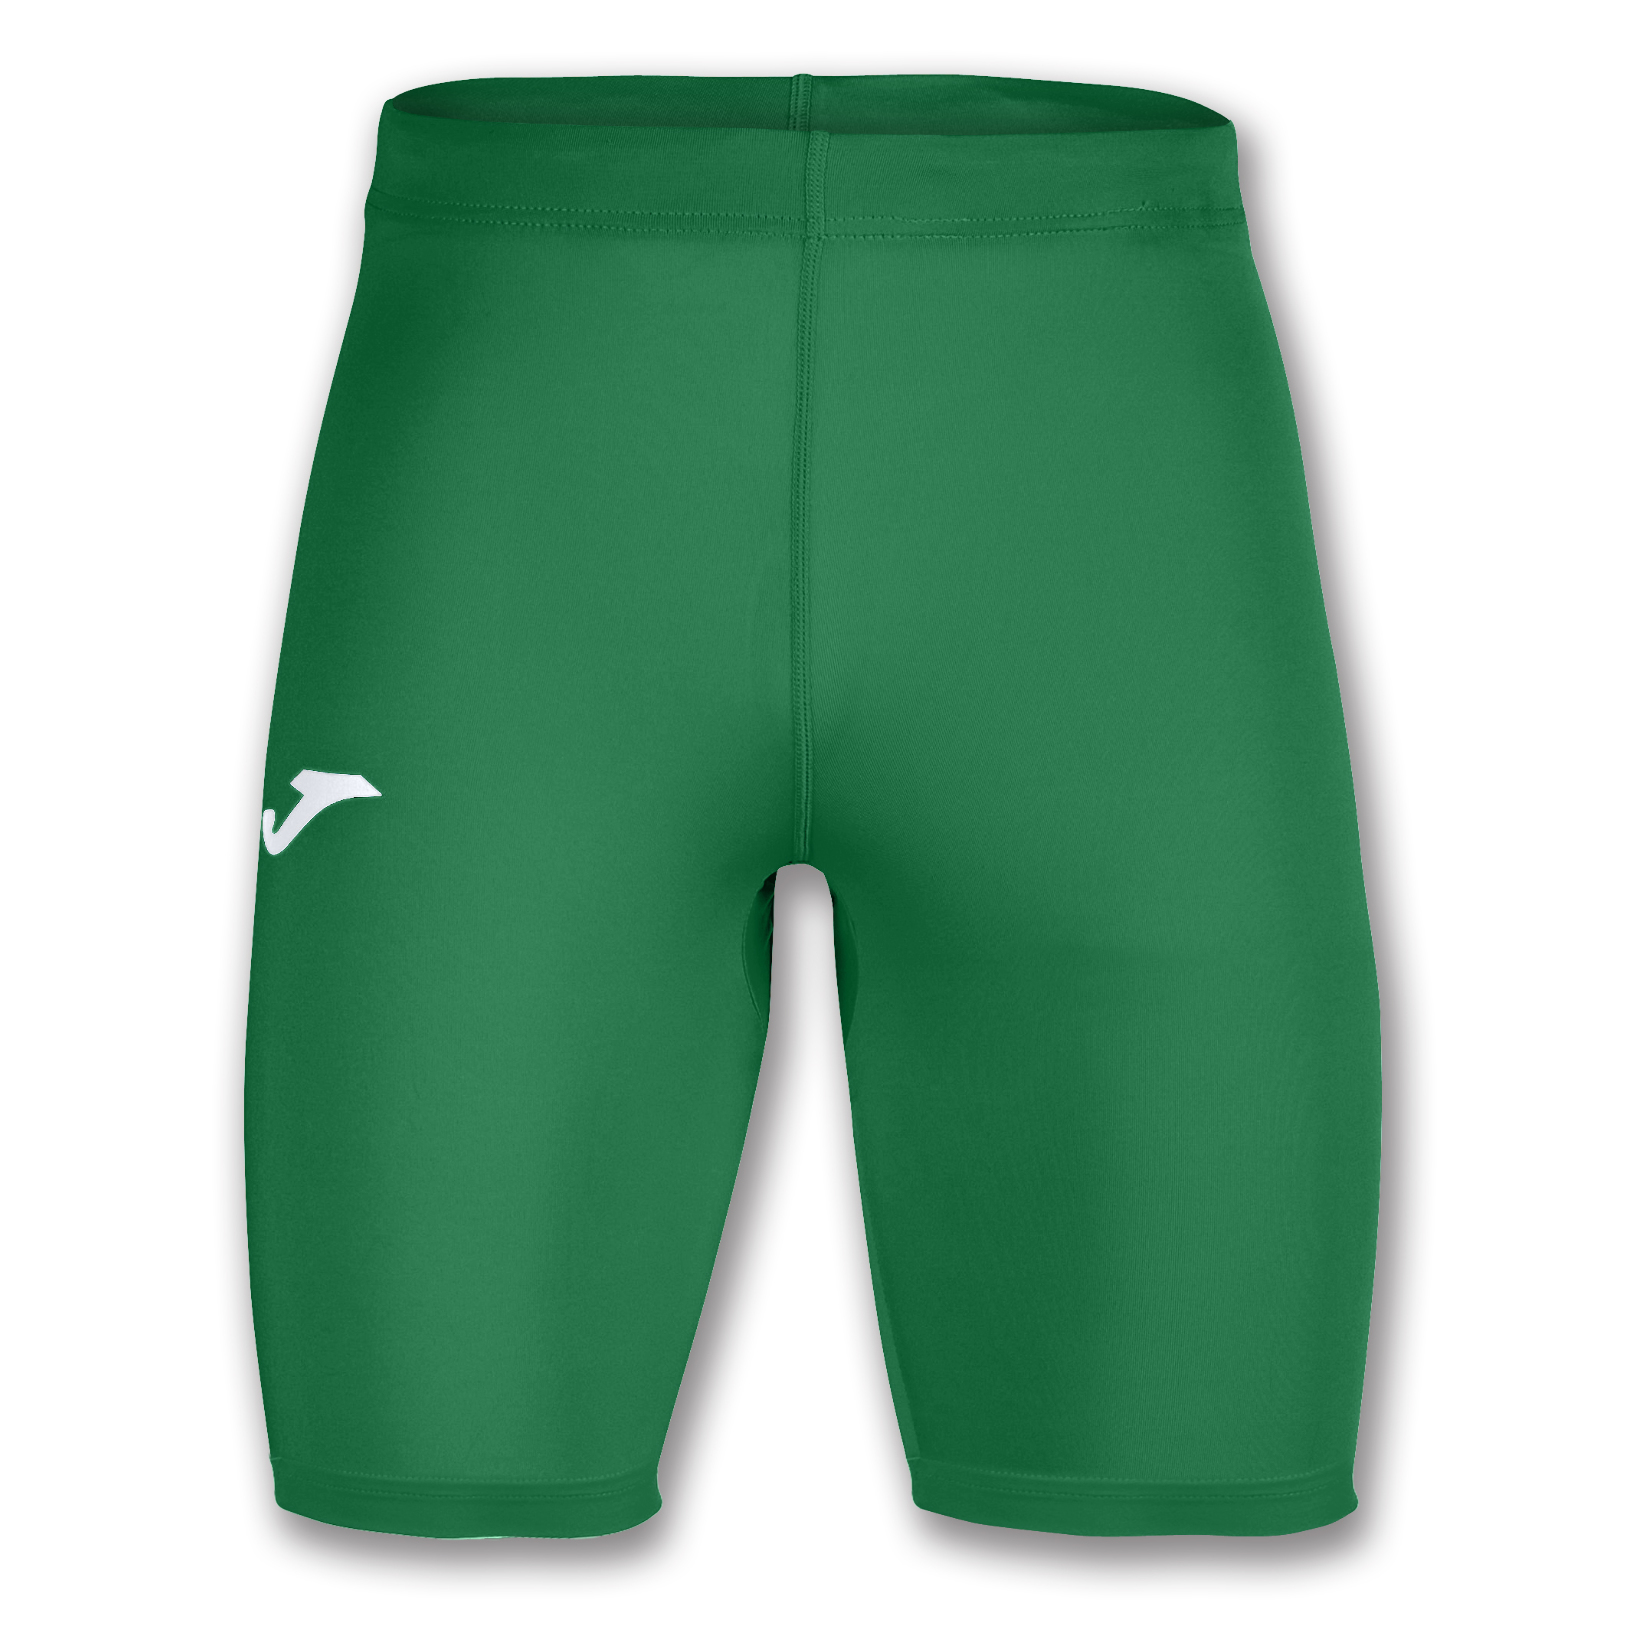 Green (Keeper Kit)